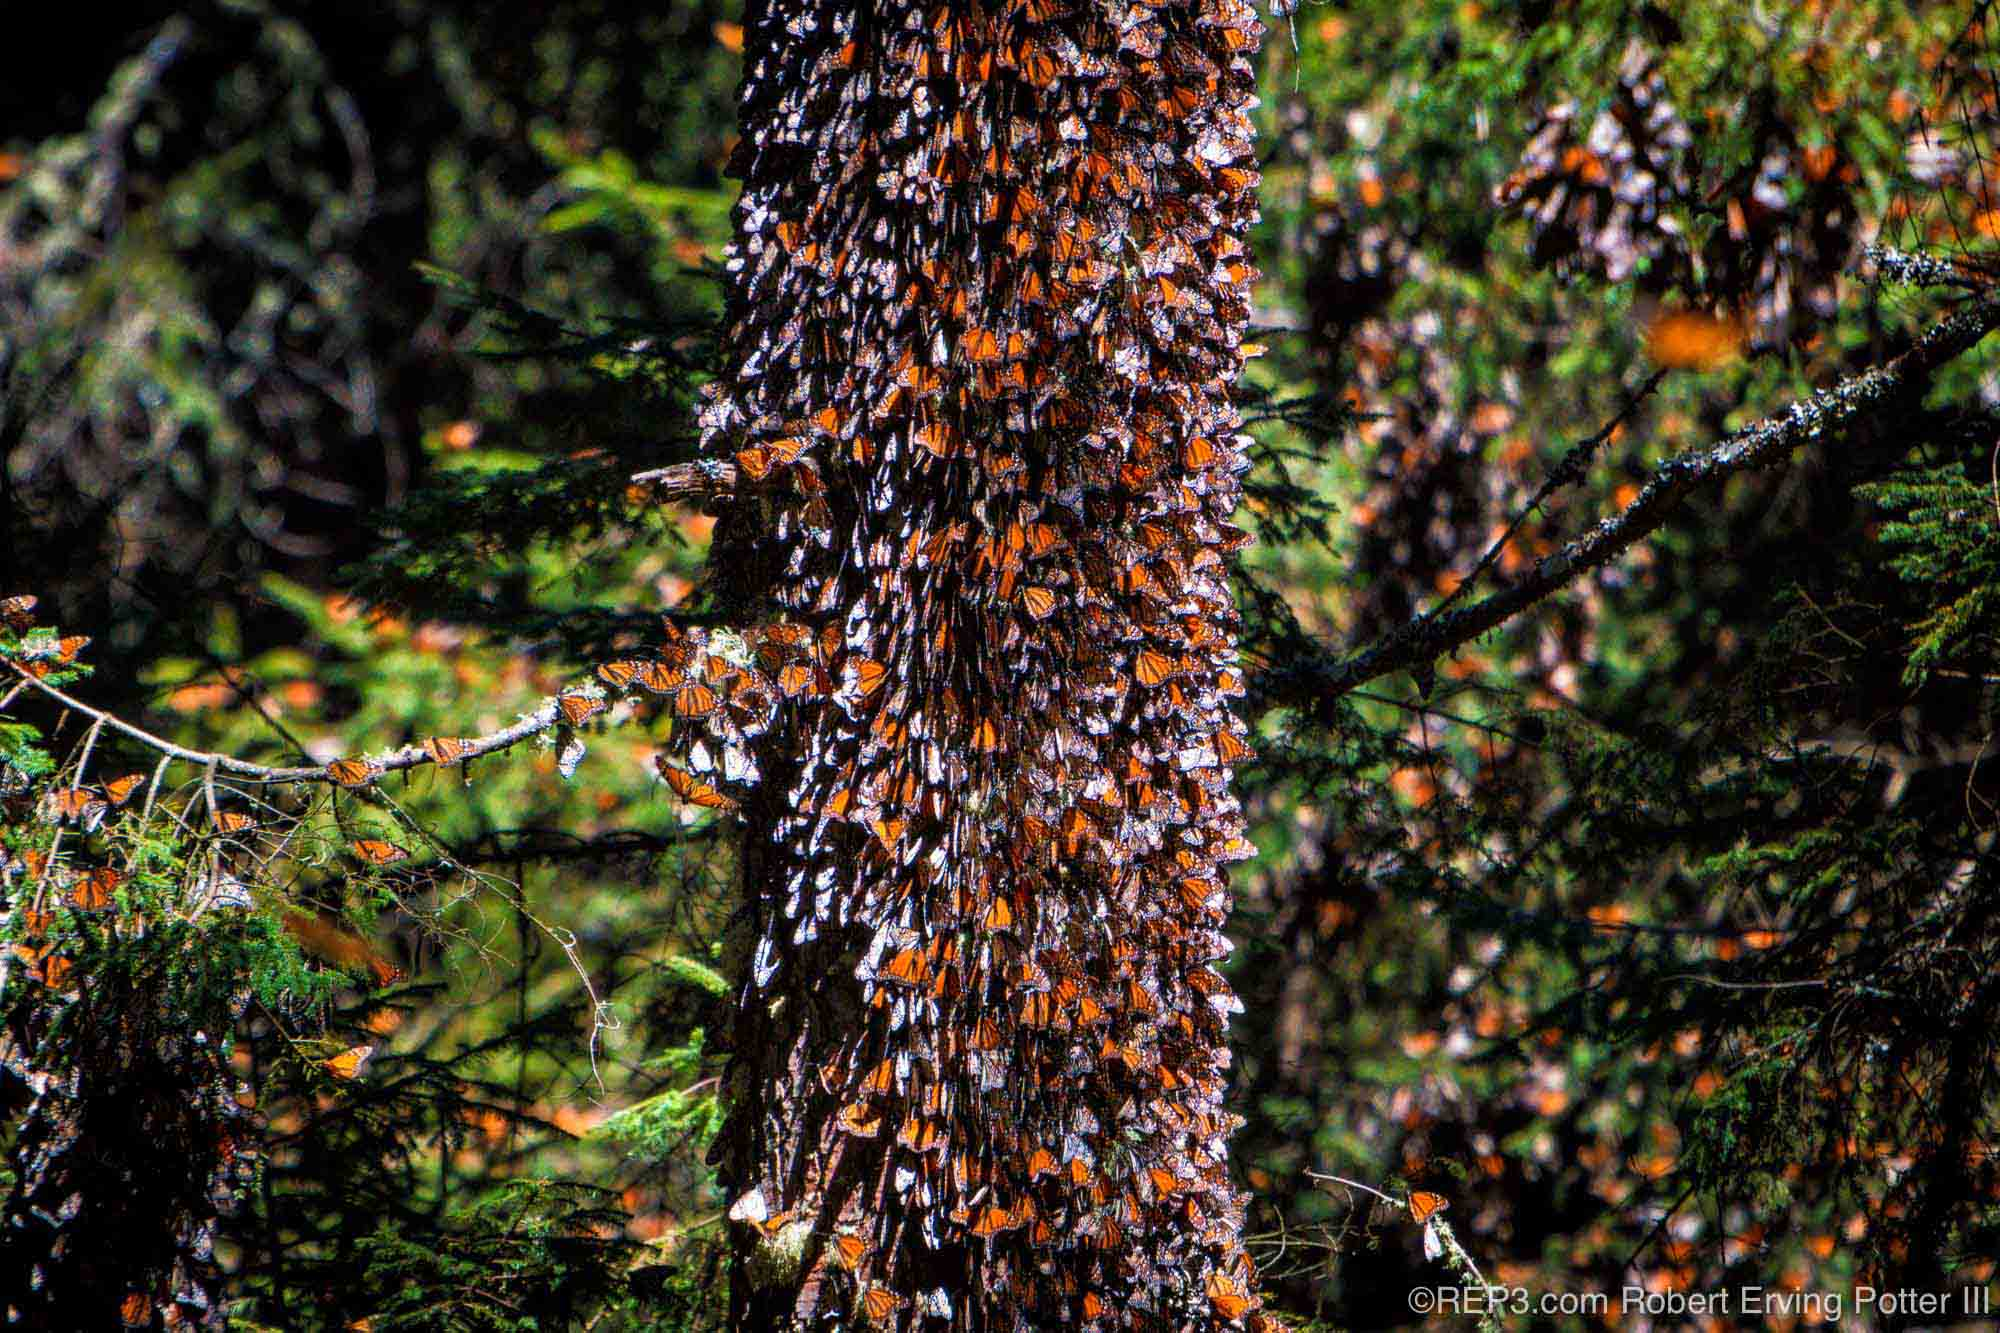 Oyamel Fir Tree with Monarch Butterflies photographed by Robert Erving Potter III, Michoacan, Mexico